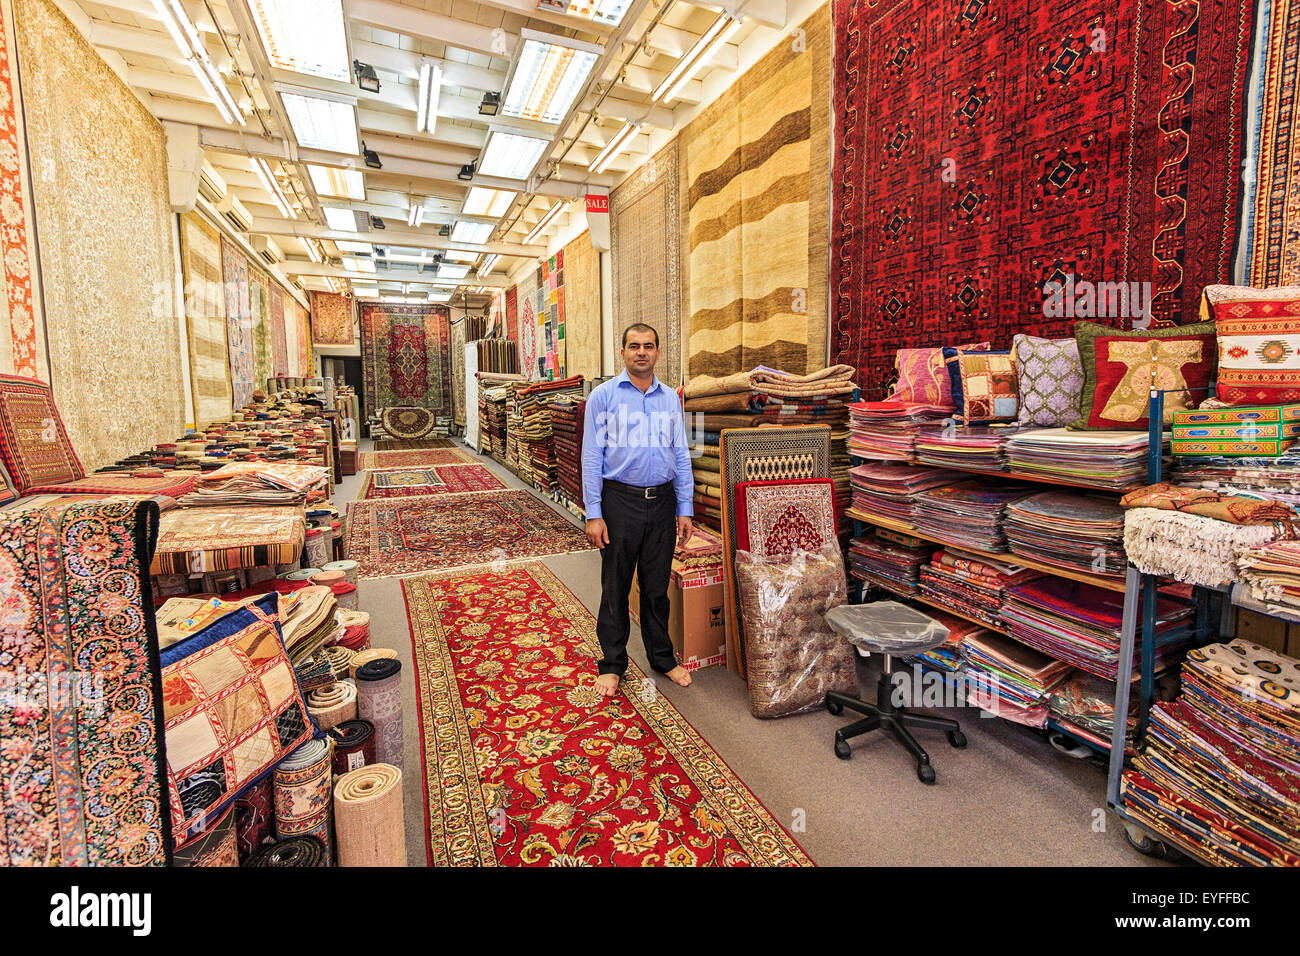 Rug shop in Singapore's Little India district. - Stock Image